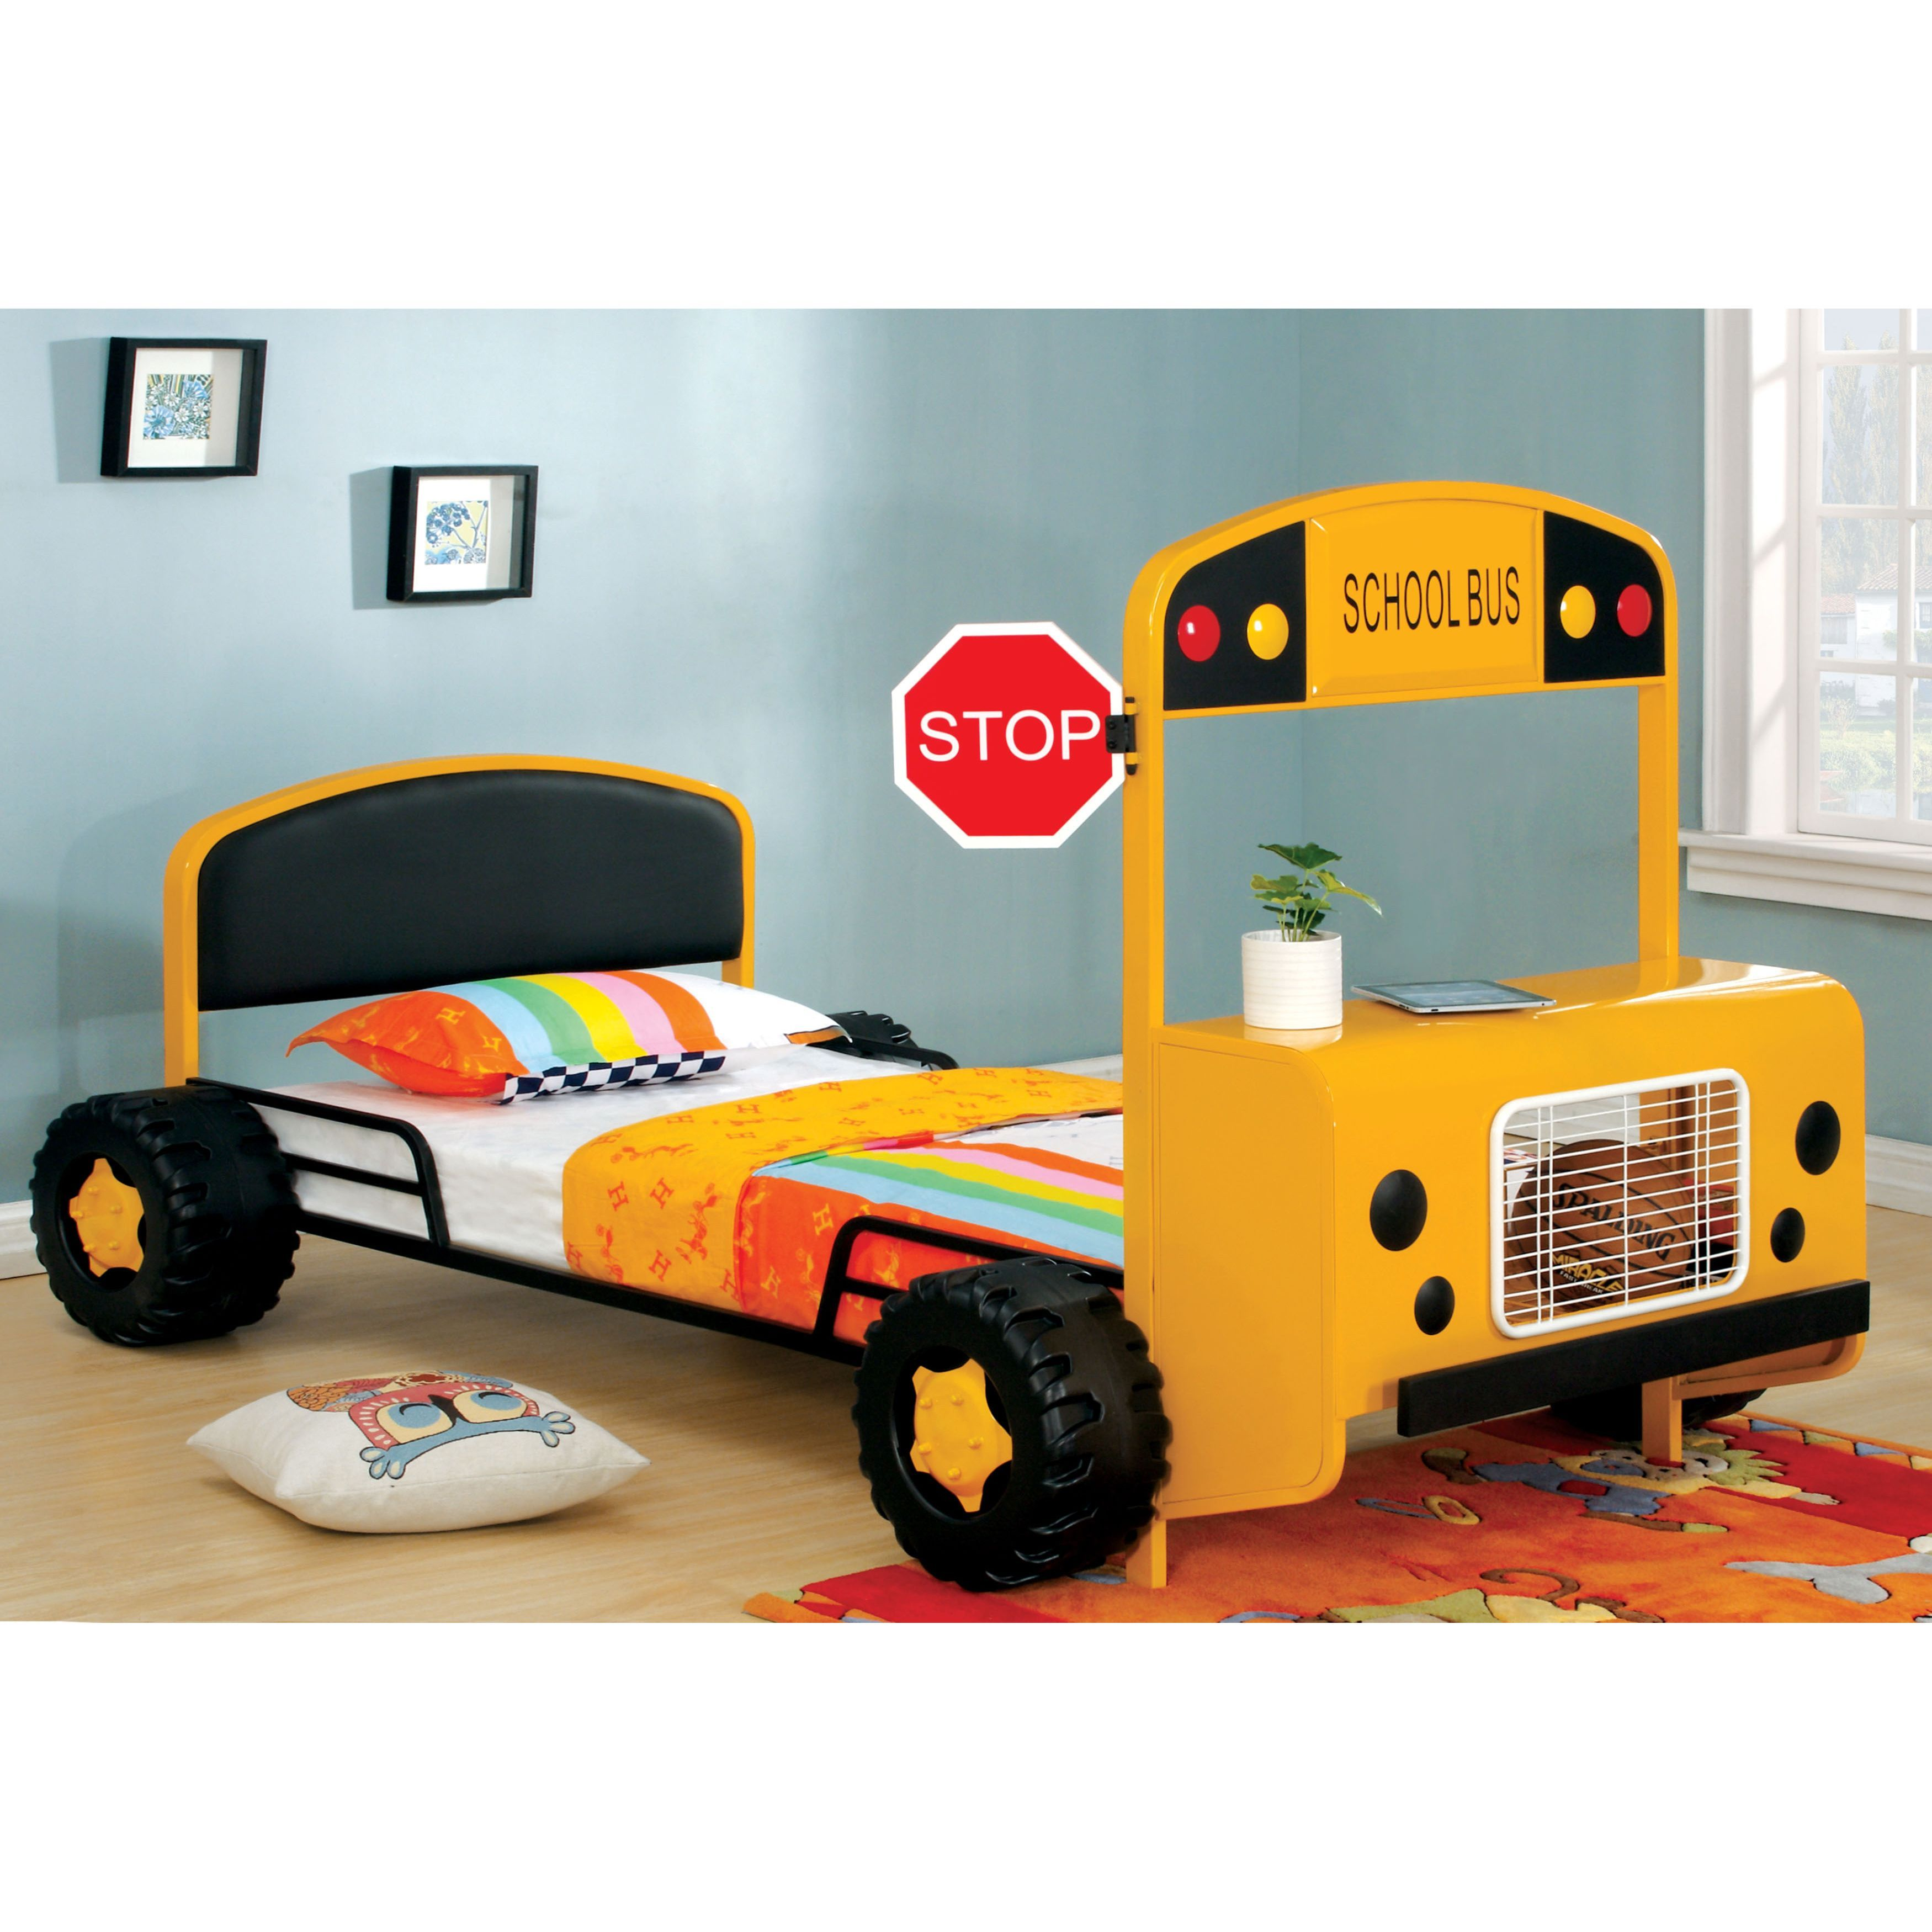 Furniture of America Elementary Bus Inspired Twin Bed (Yellow ...